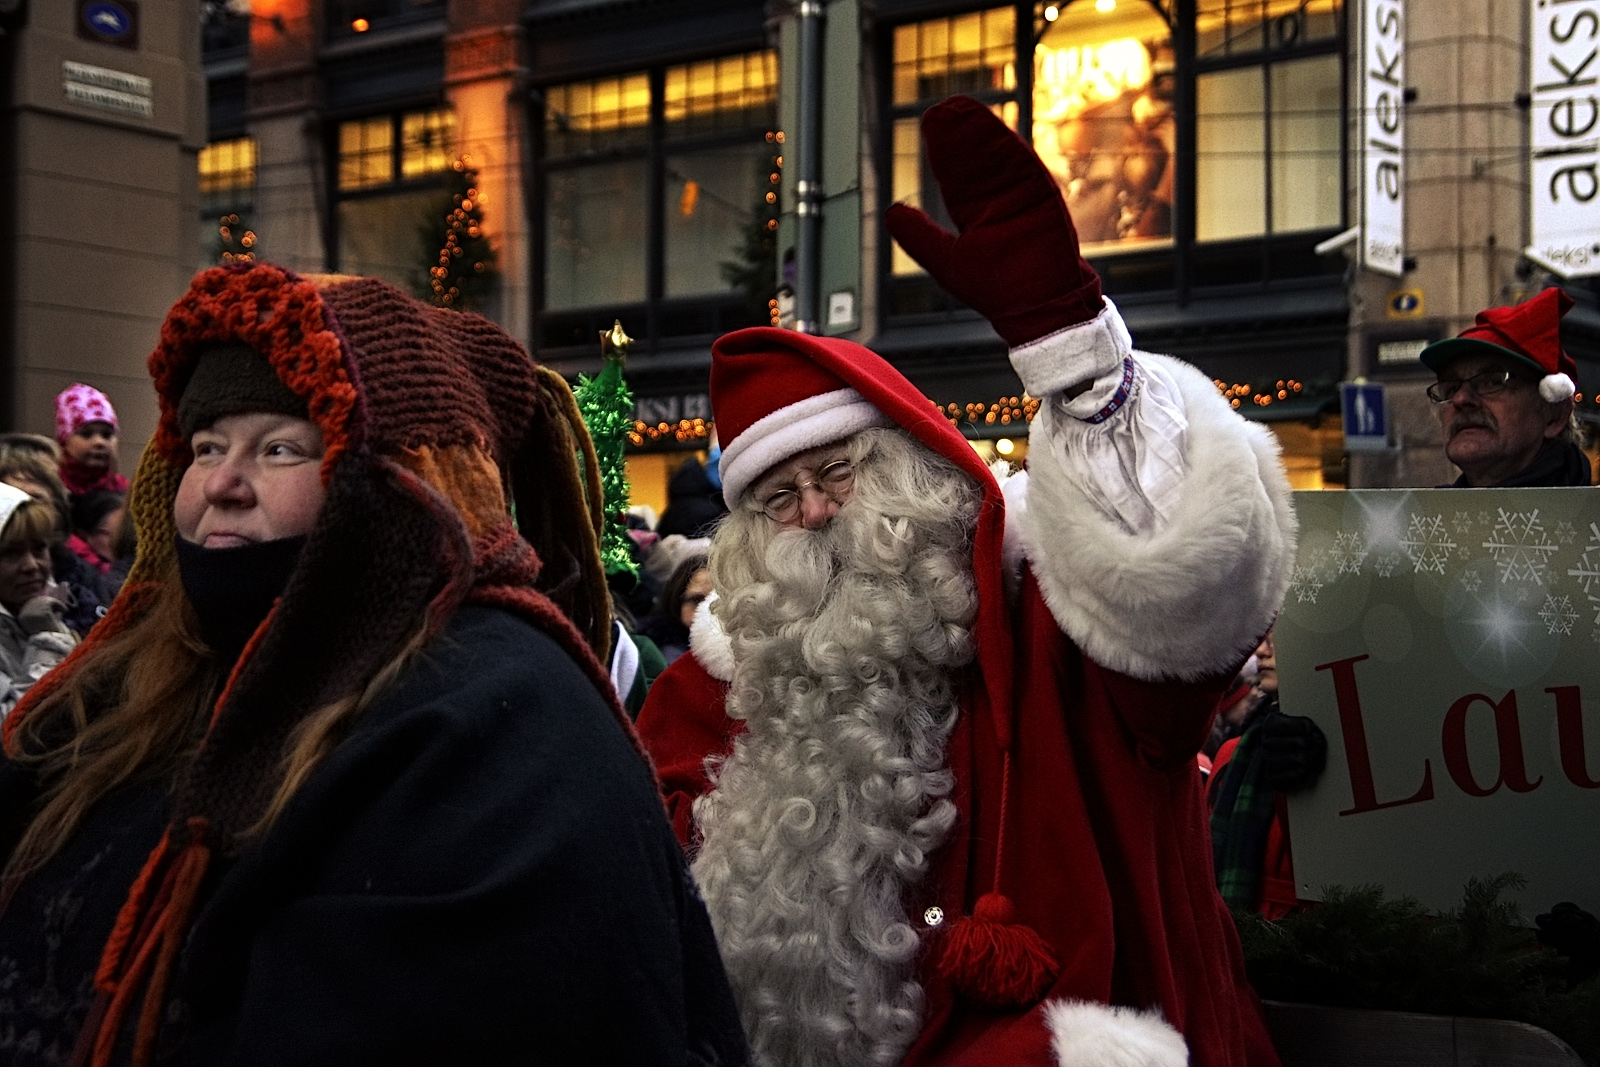 Santa Claus Lives in Lapland But His Predecessor's Bones May Have Been Found in Turkey